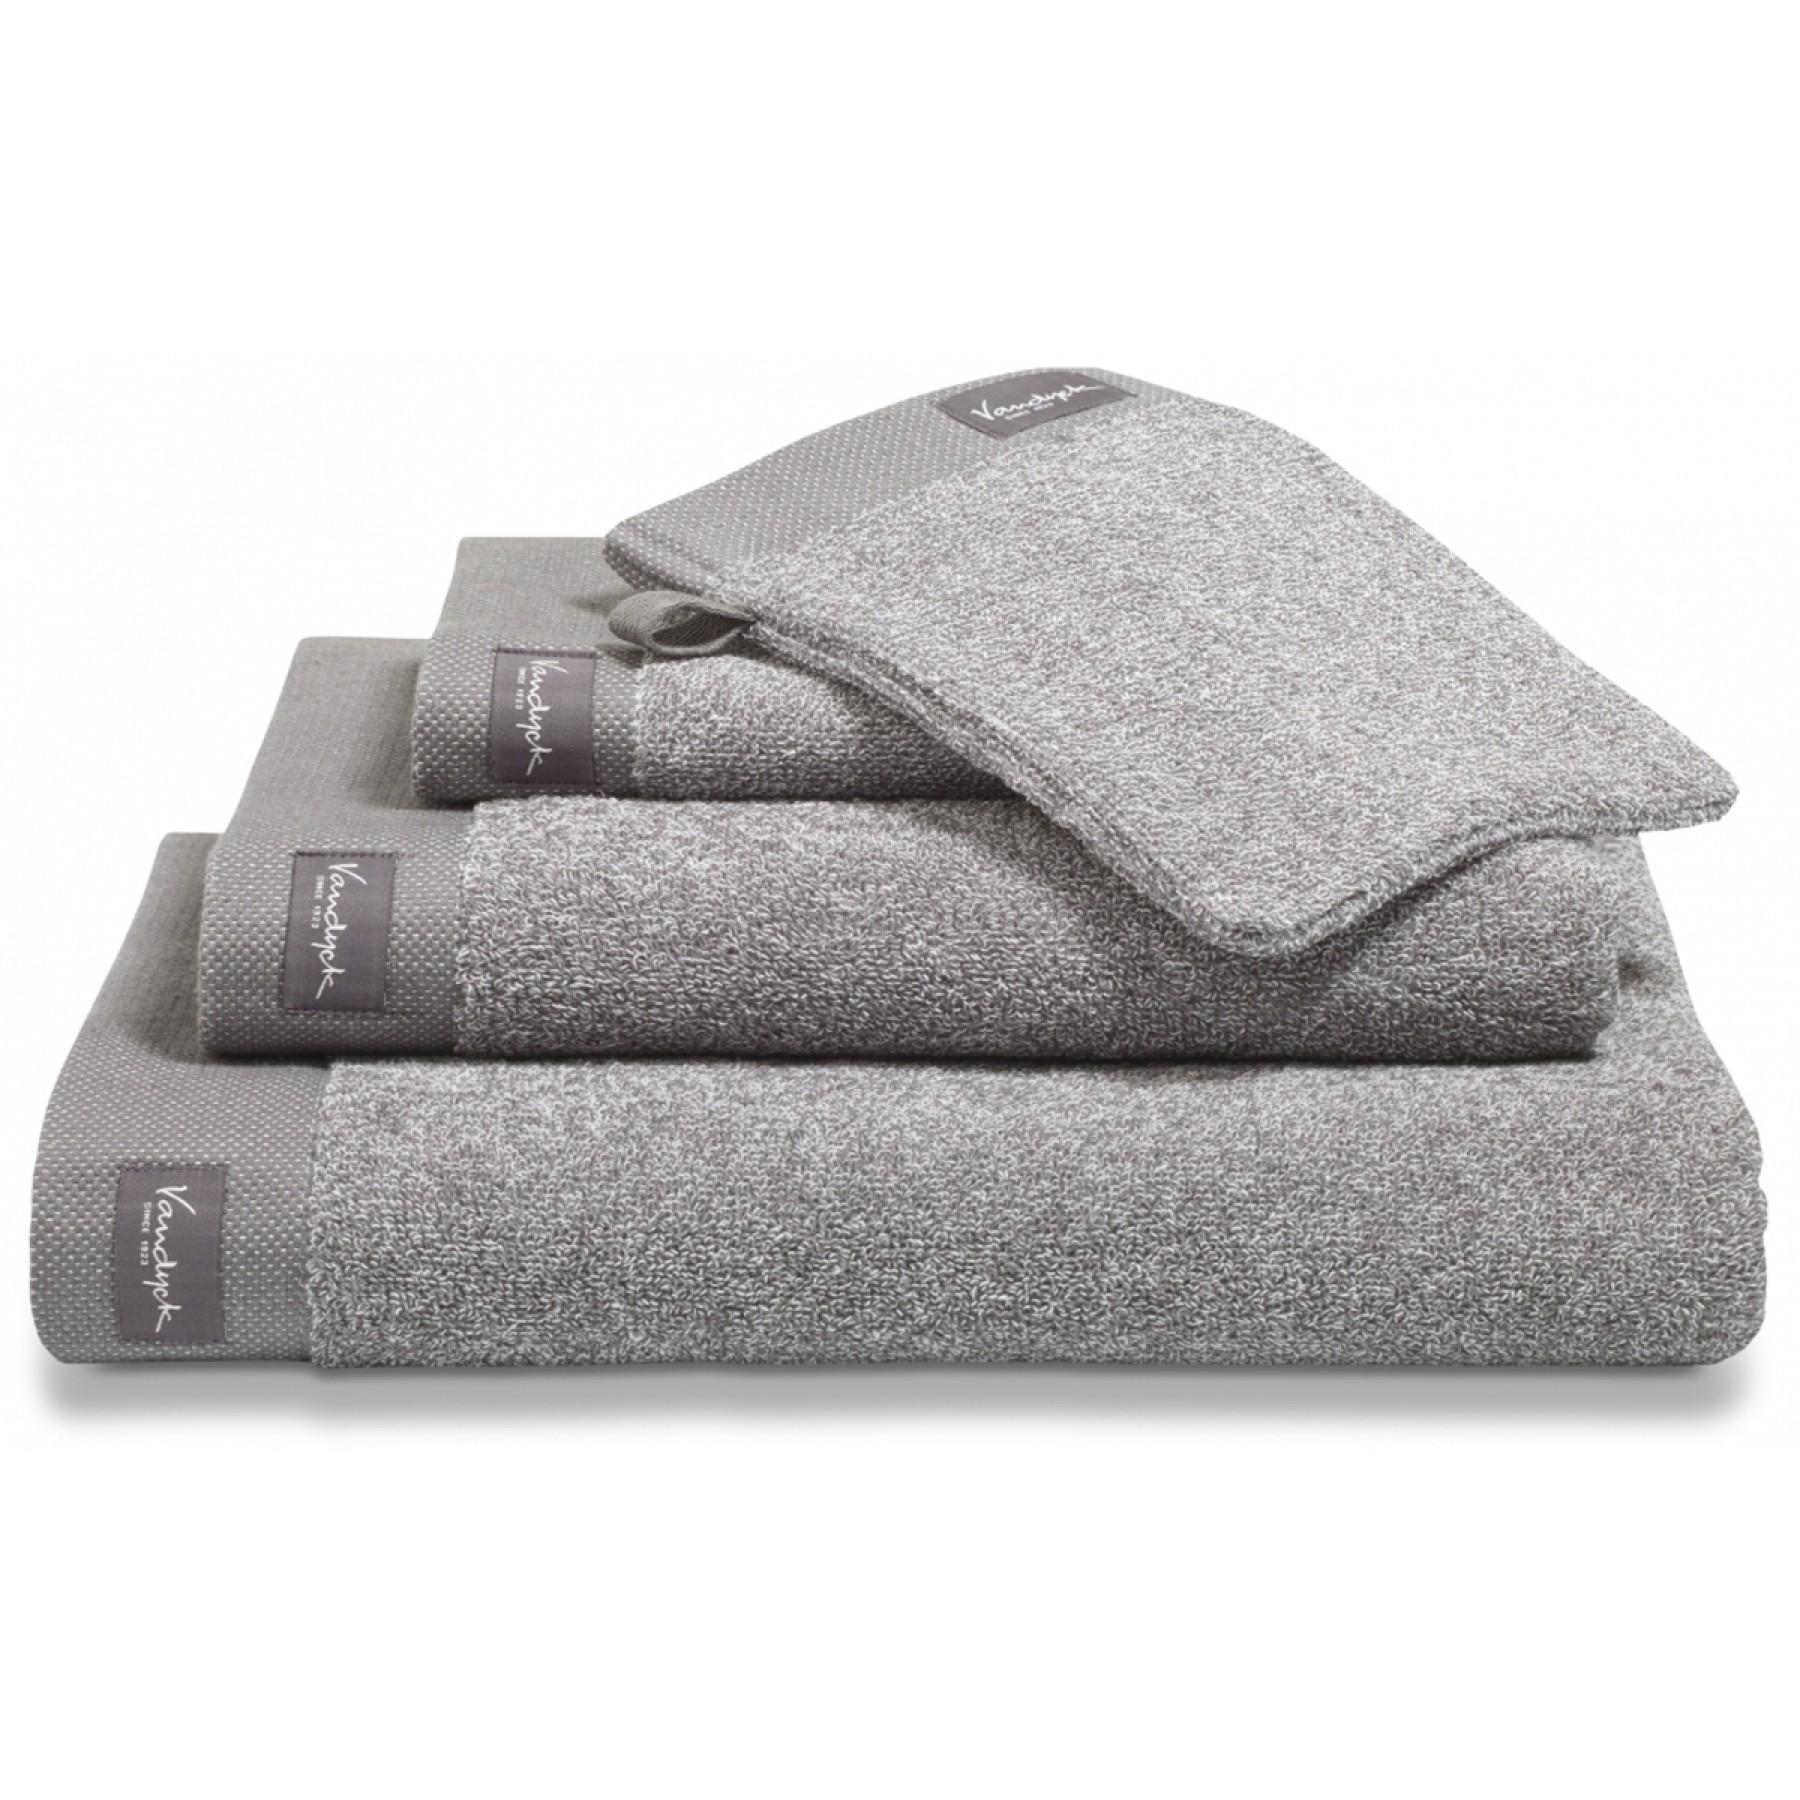 Vandyck Badlaken Home Mouliné Mole Grey